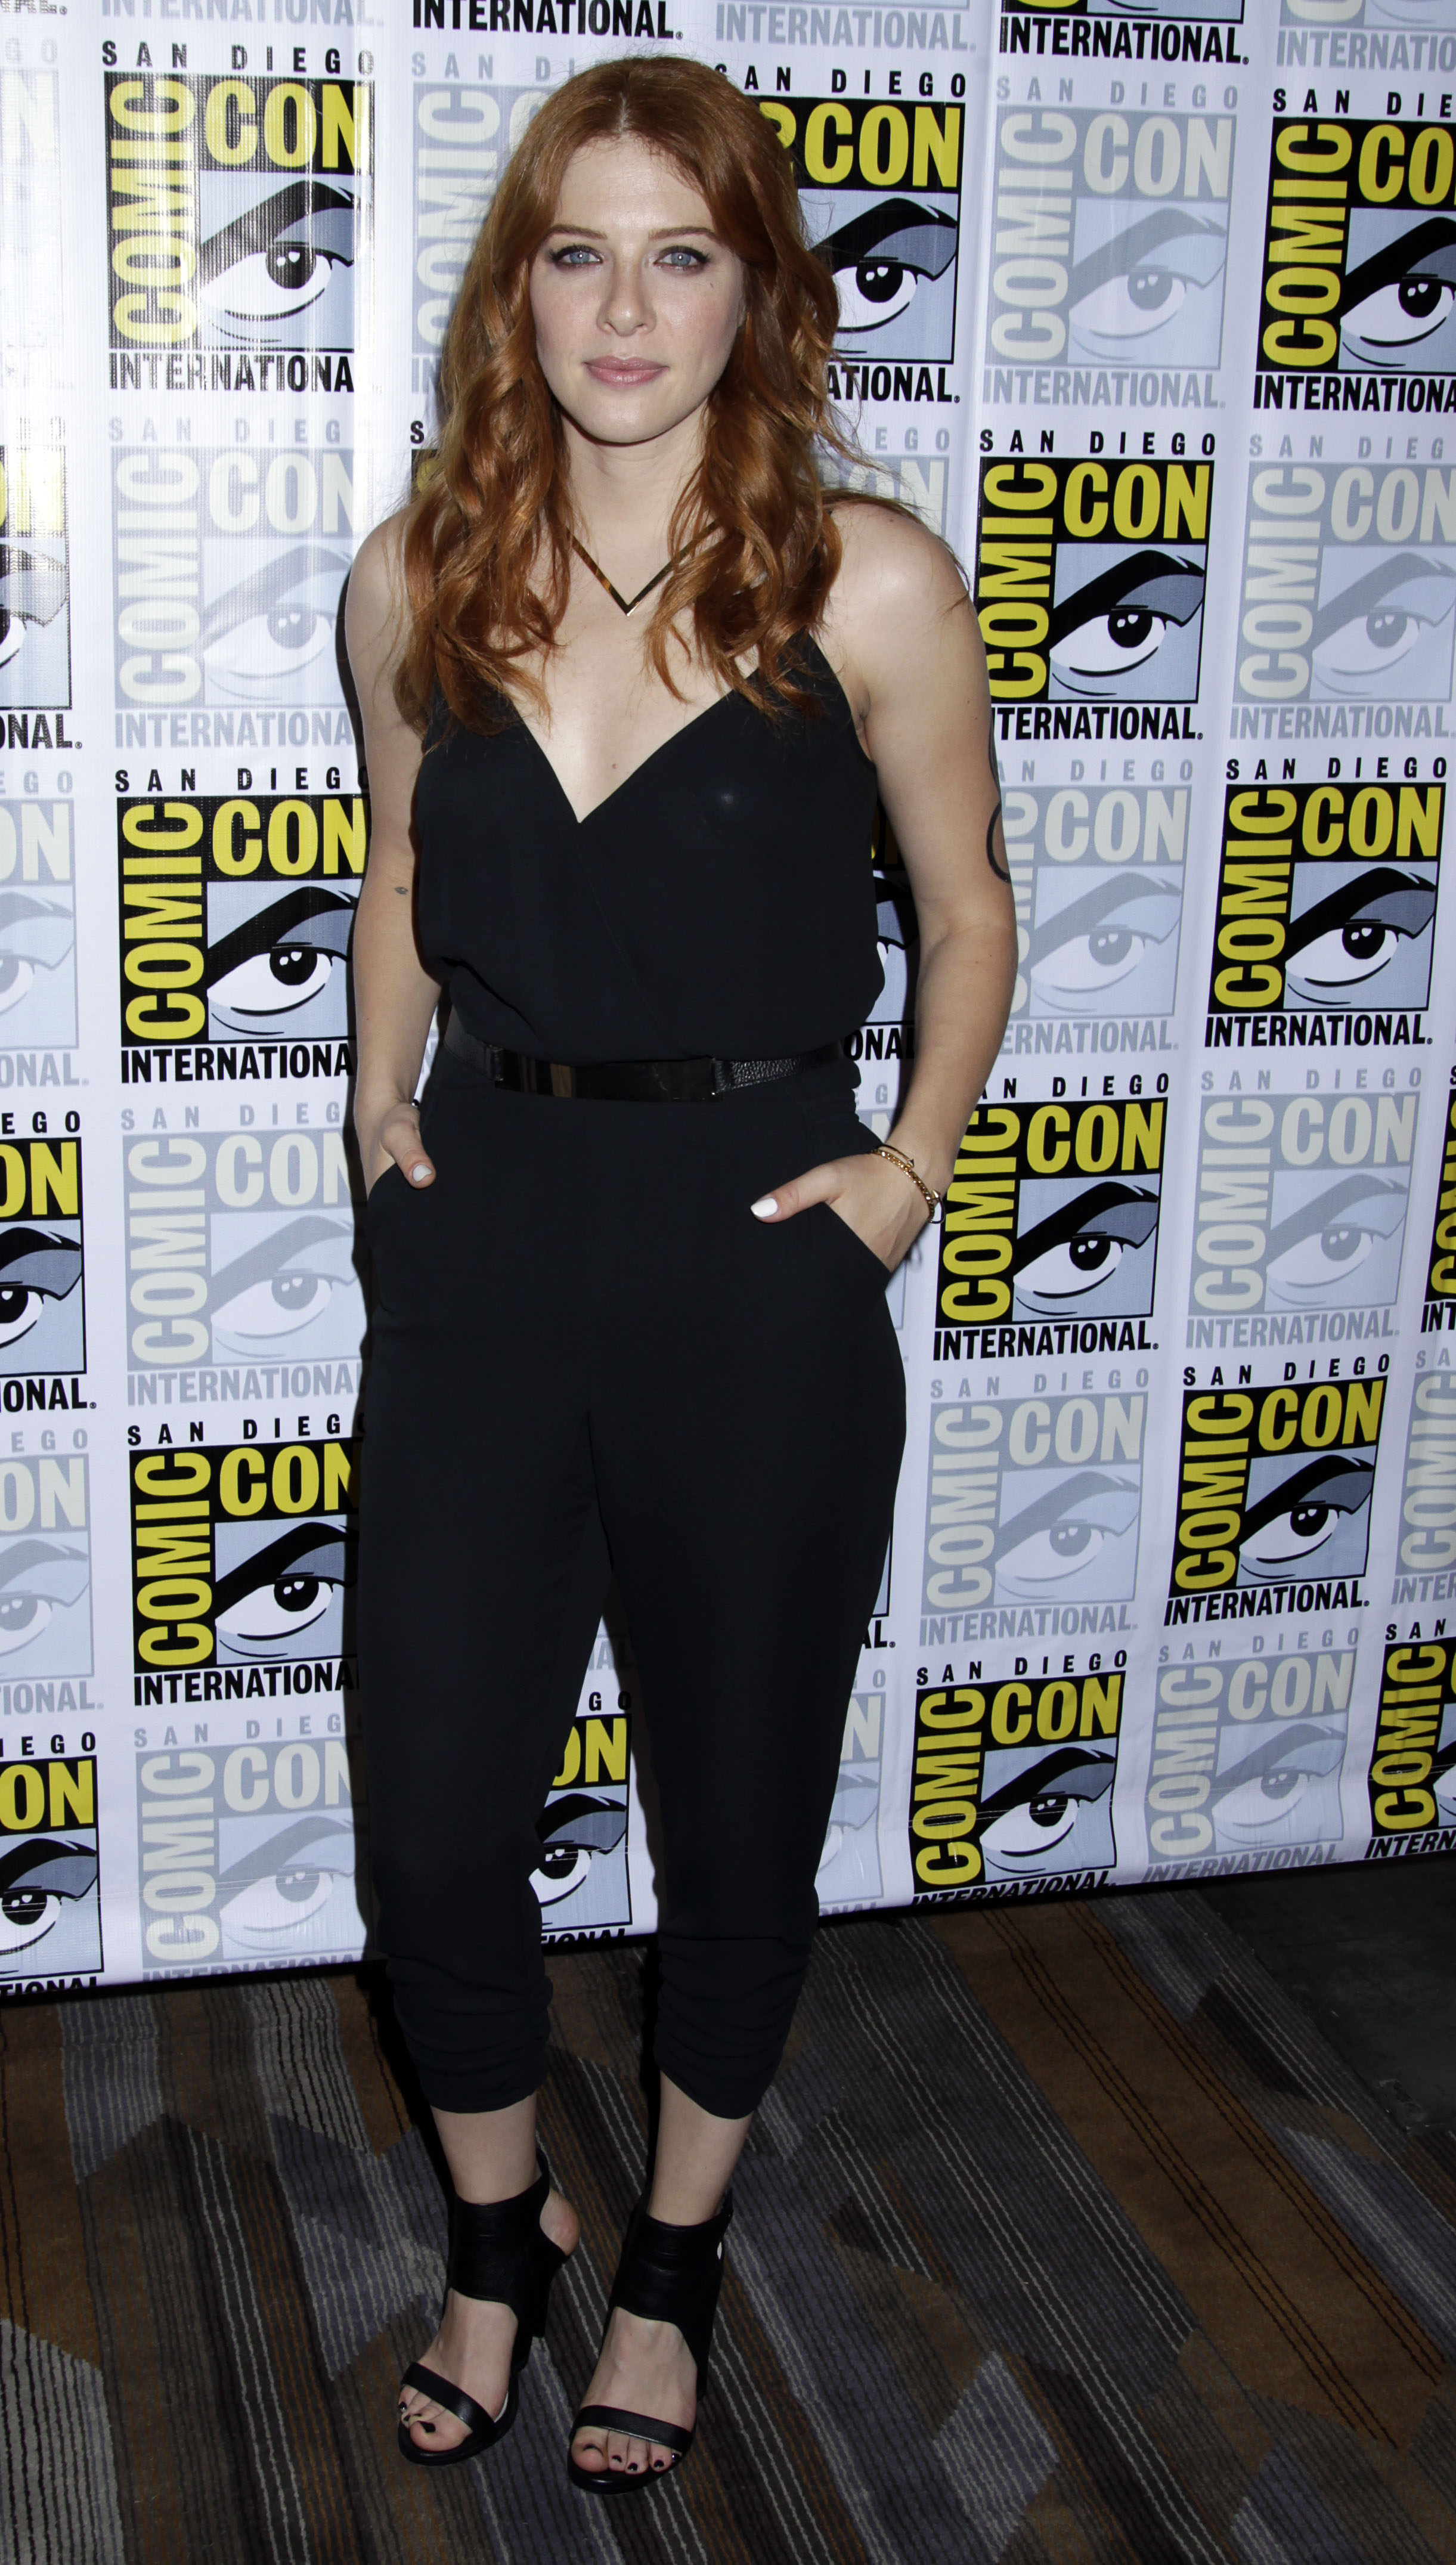 The Sleek Rachelle Lefevre